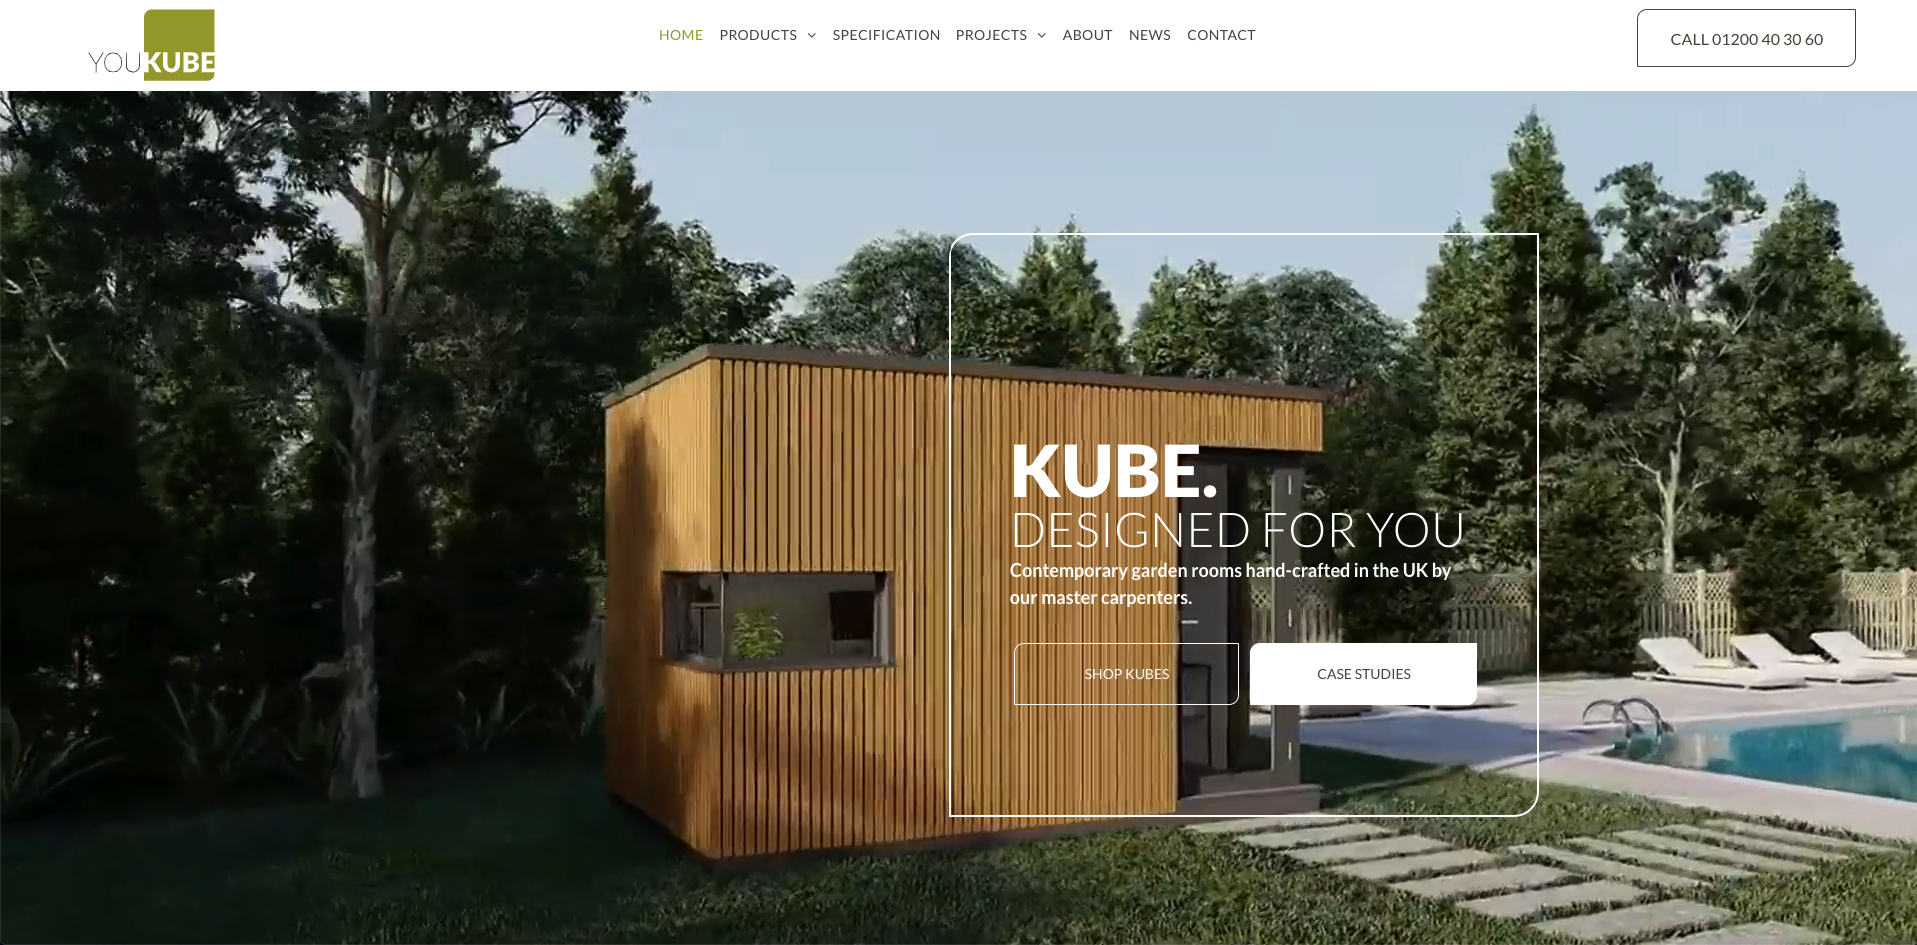 YouKube Garden Rooms